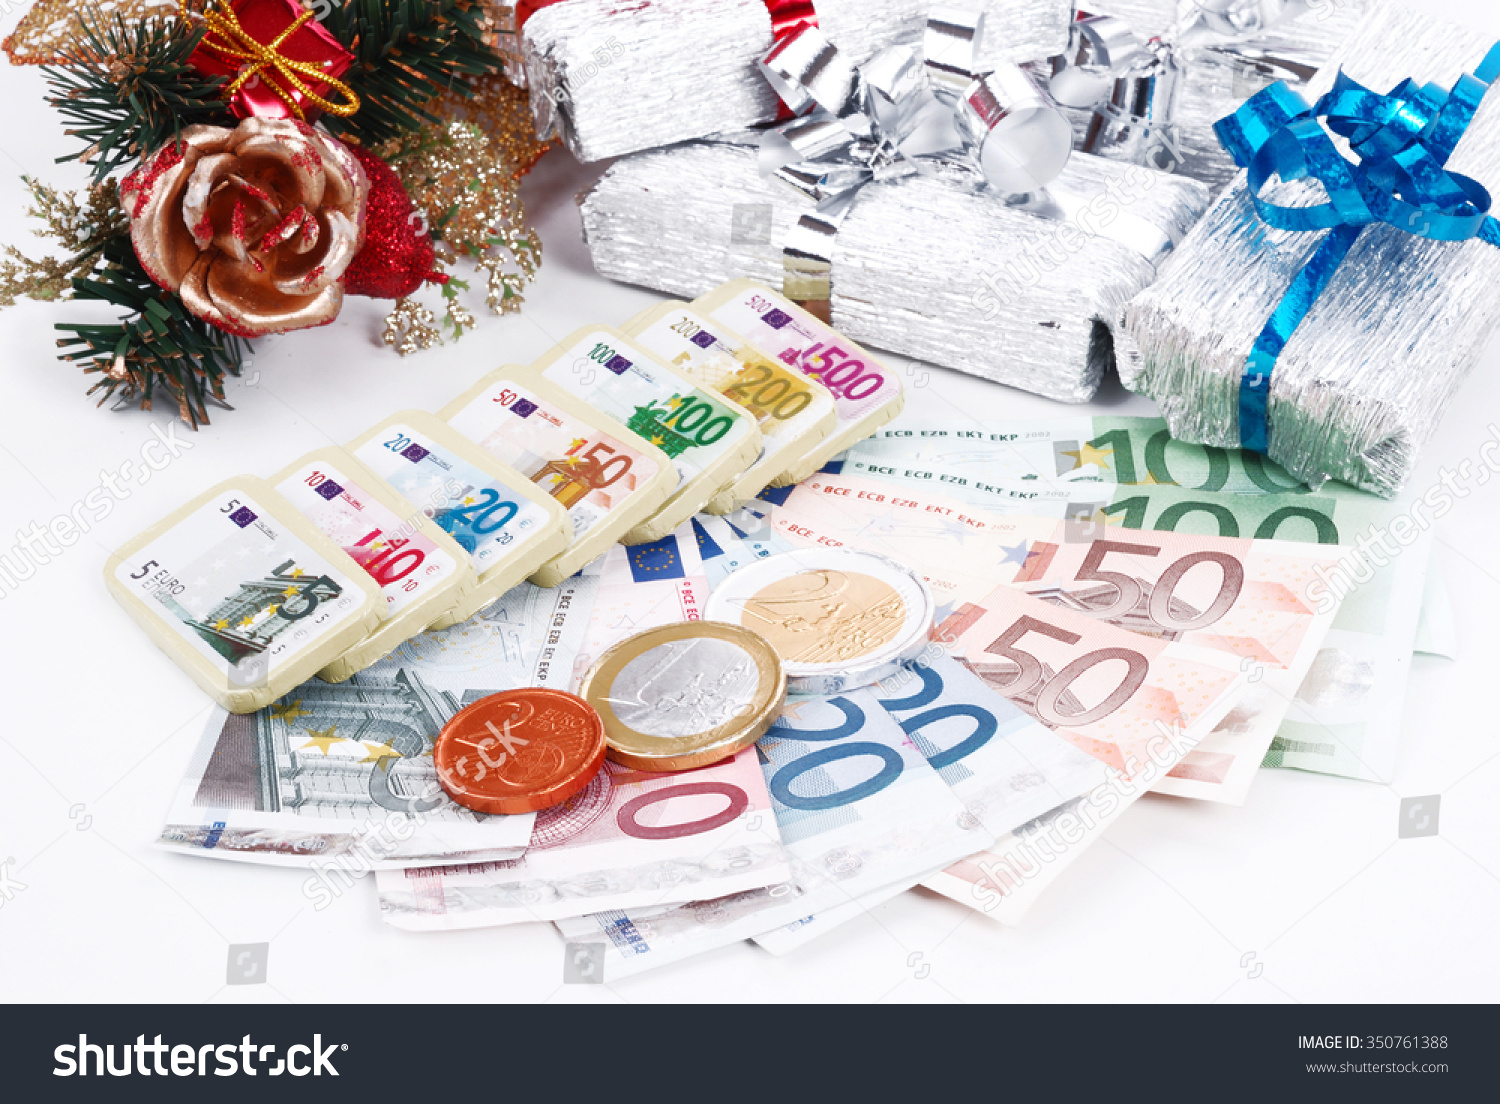 Real Fake Money Christmas Gifts Chocolate Stock Photo (Edit Now ...